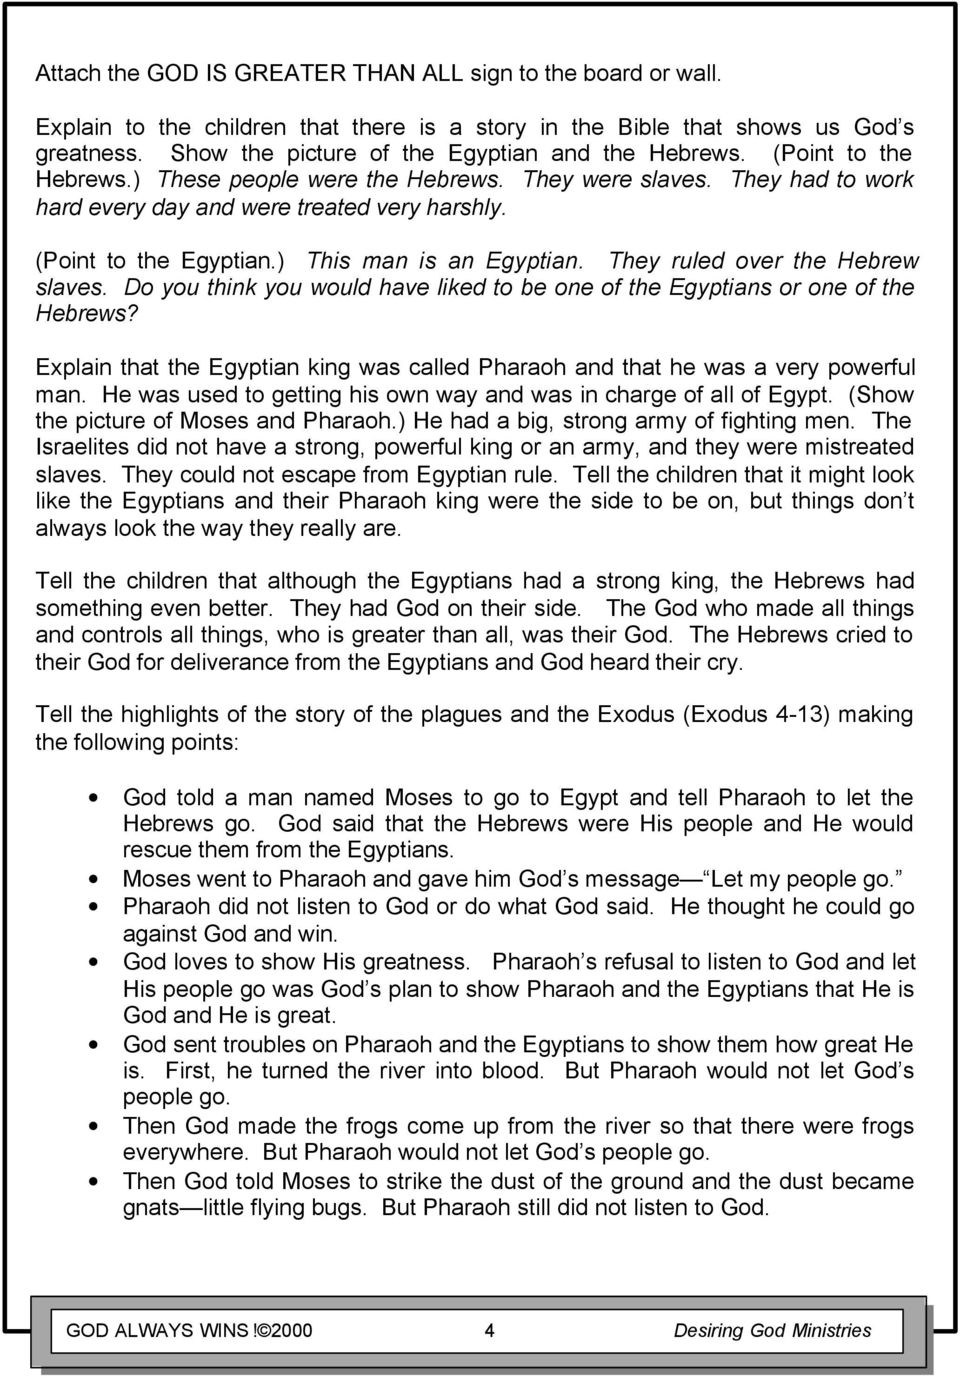 (Point to the Egyptian.) This man is an Egyptian. They ruled over the Hebrew slaves. Do you think you would have liked to be one of the Egyptians or one of the Hebrews?